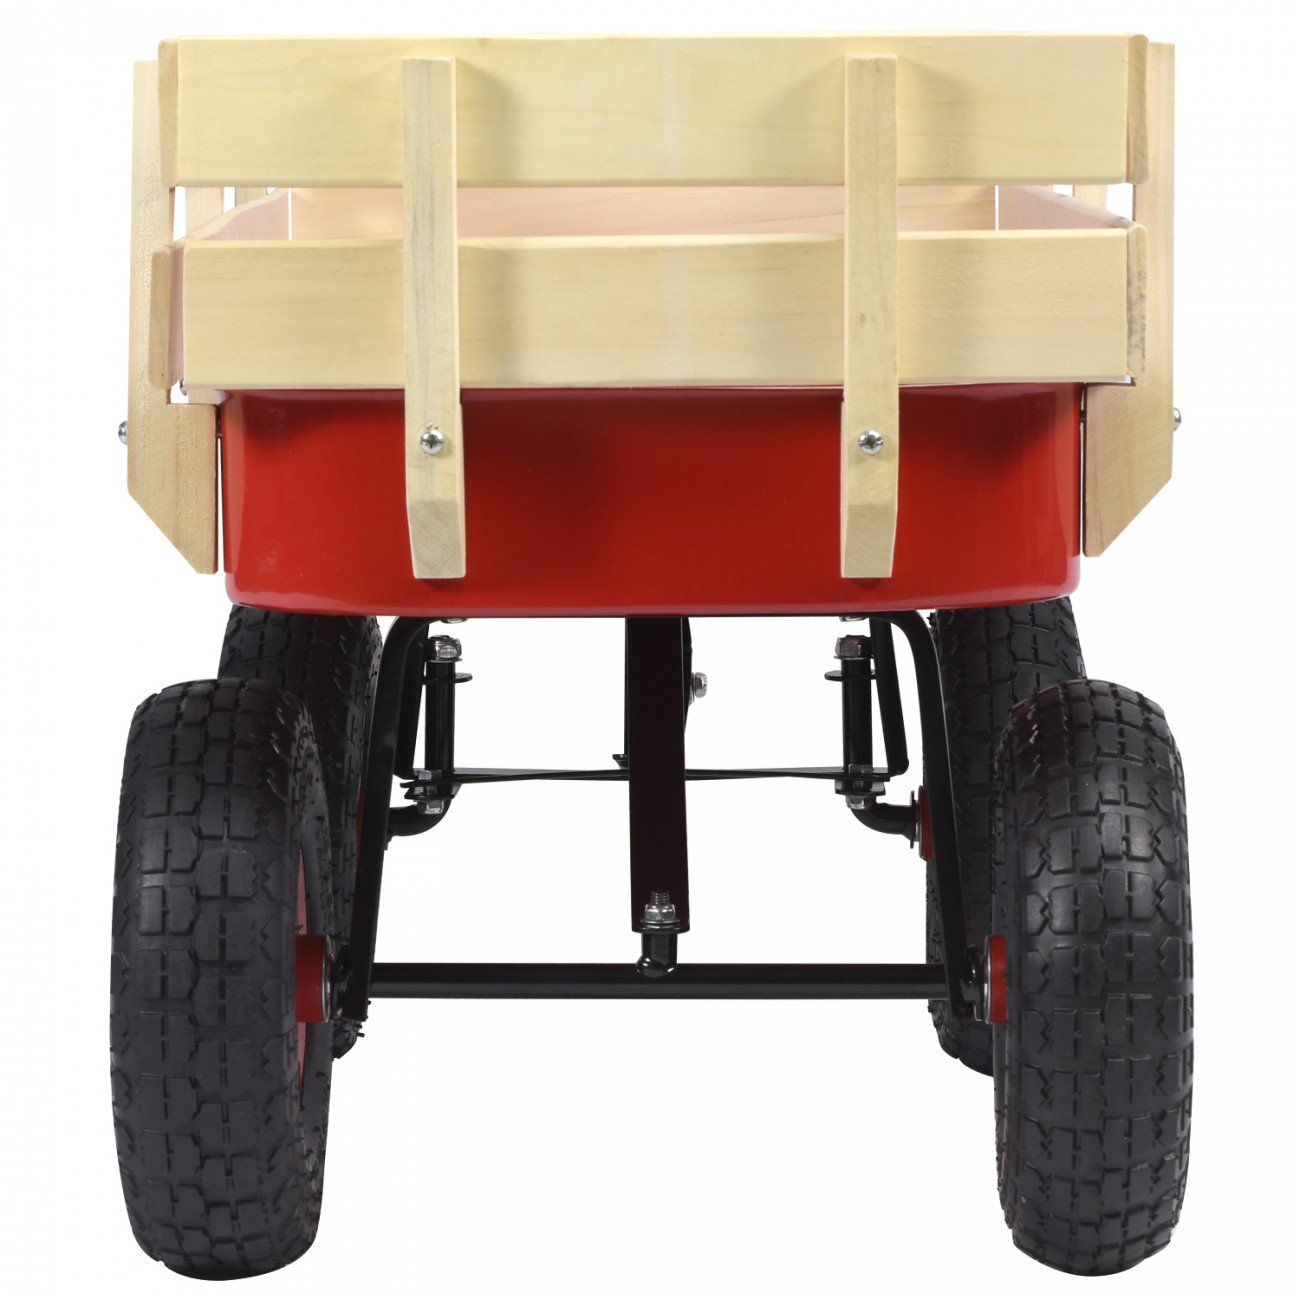 Voyager Tools All Purpose Beach Wagon 330lb Capacity Moving Wagon Red And Light Wood